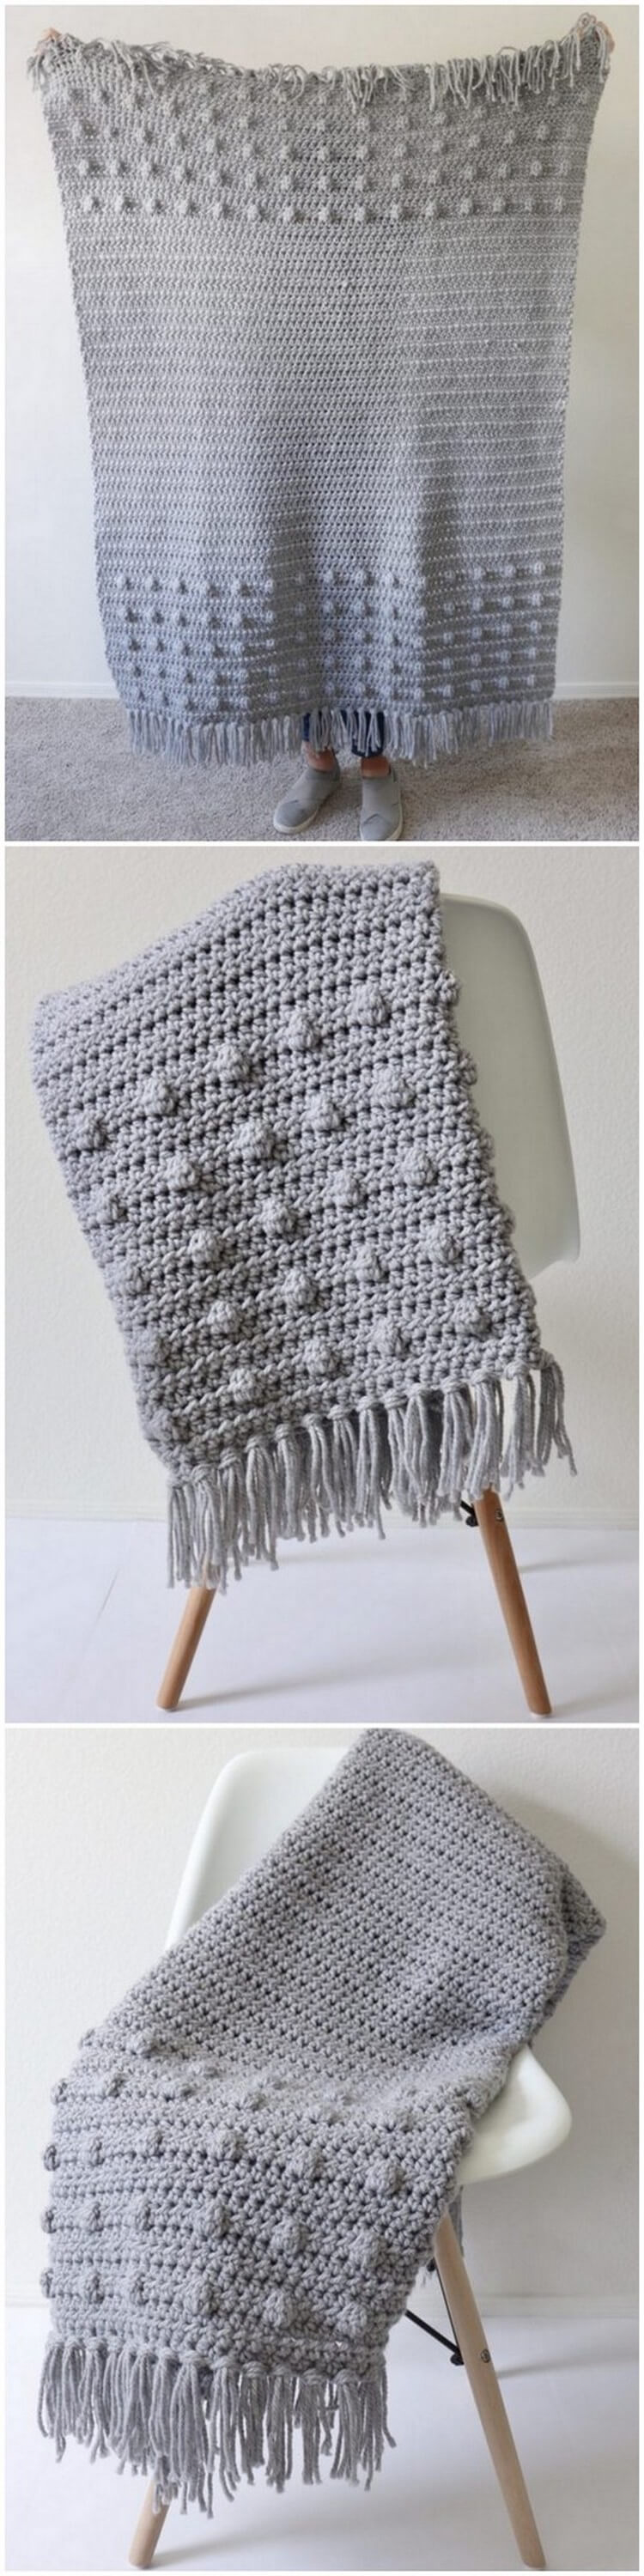 Crochet Blanket Pattern (12)